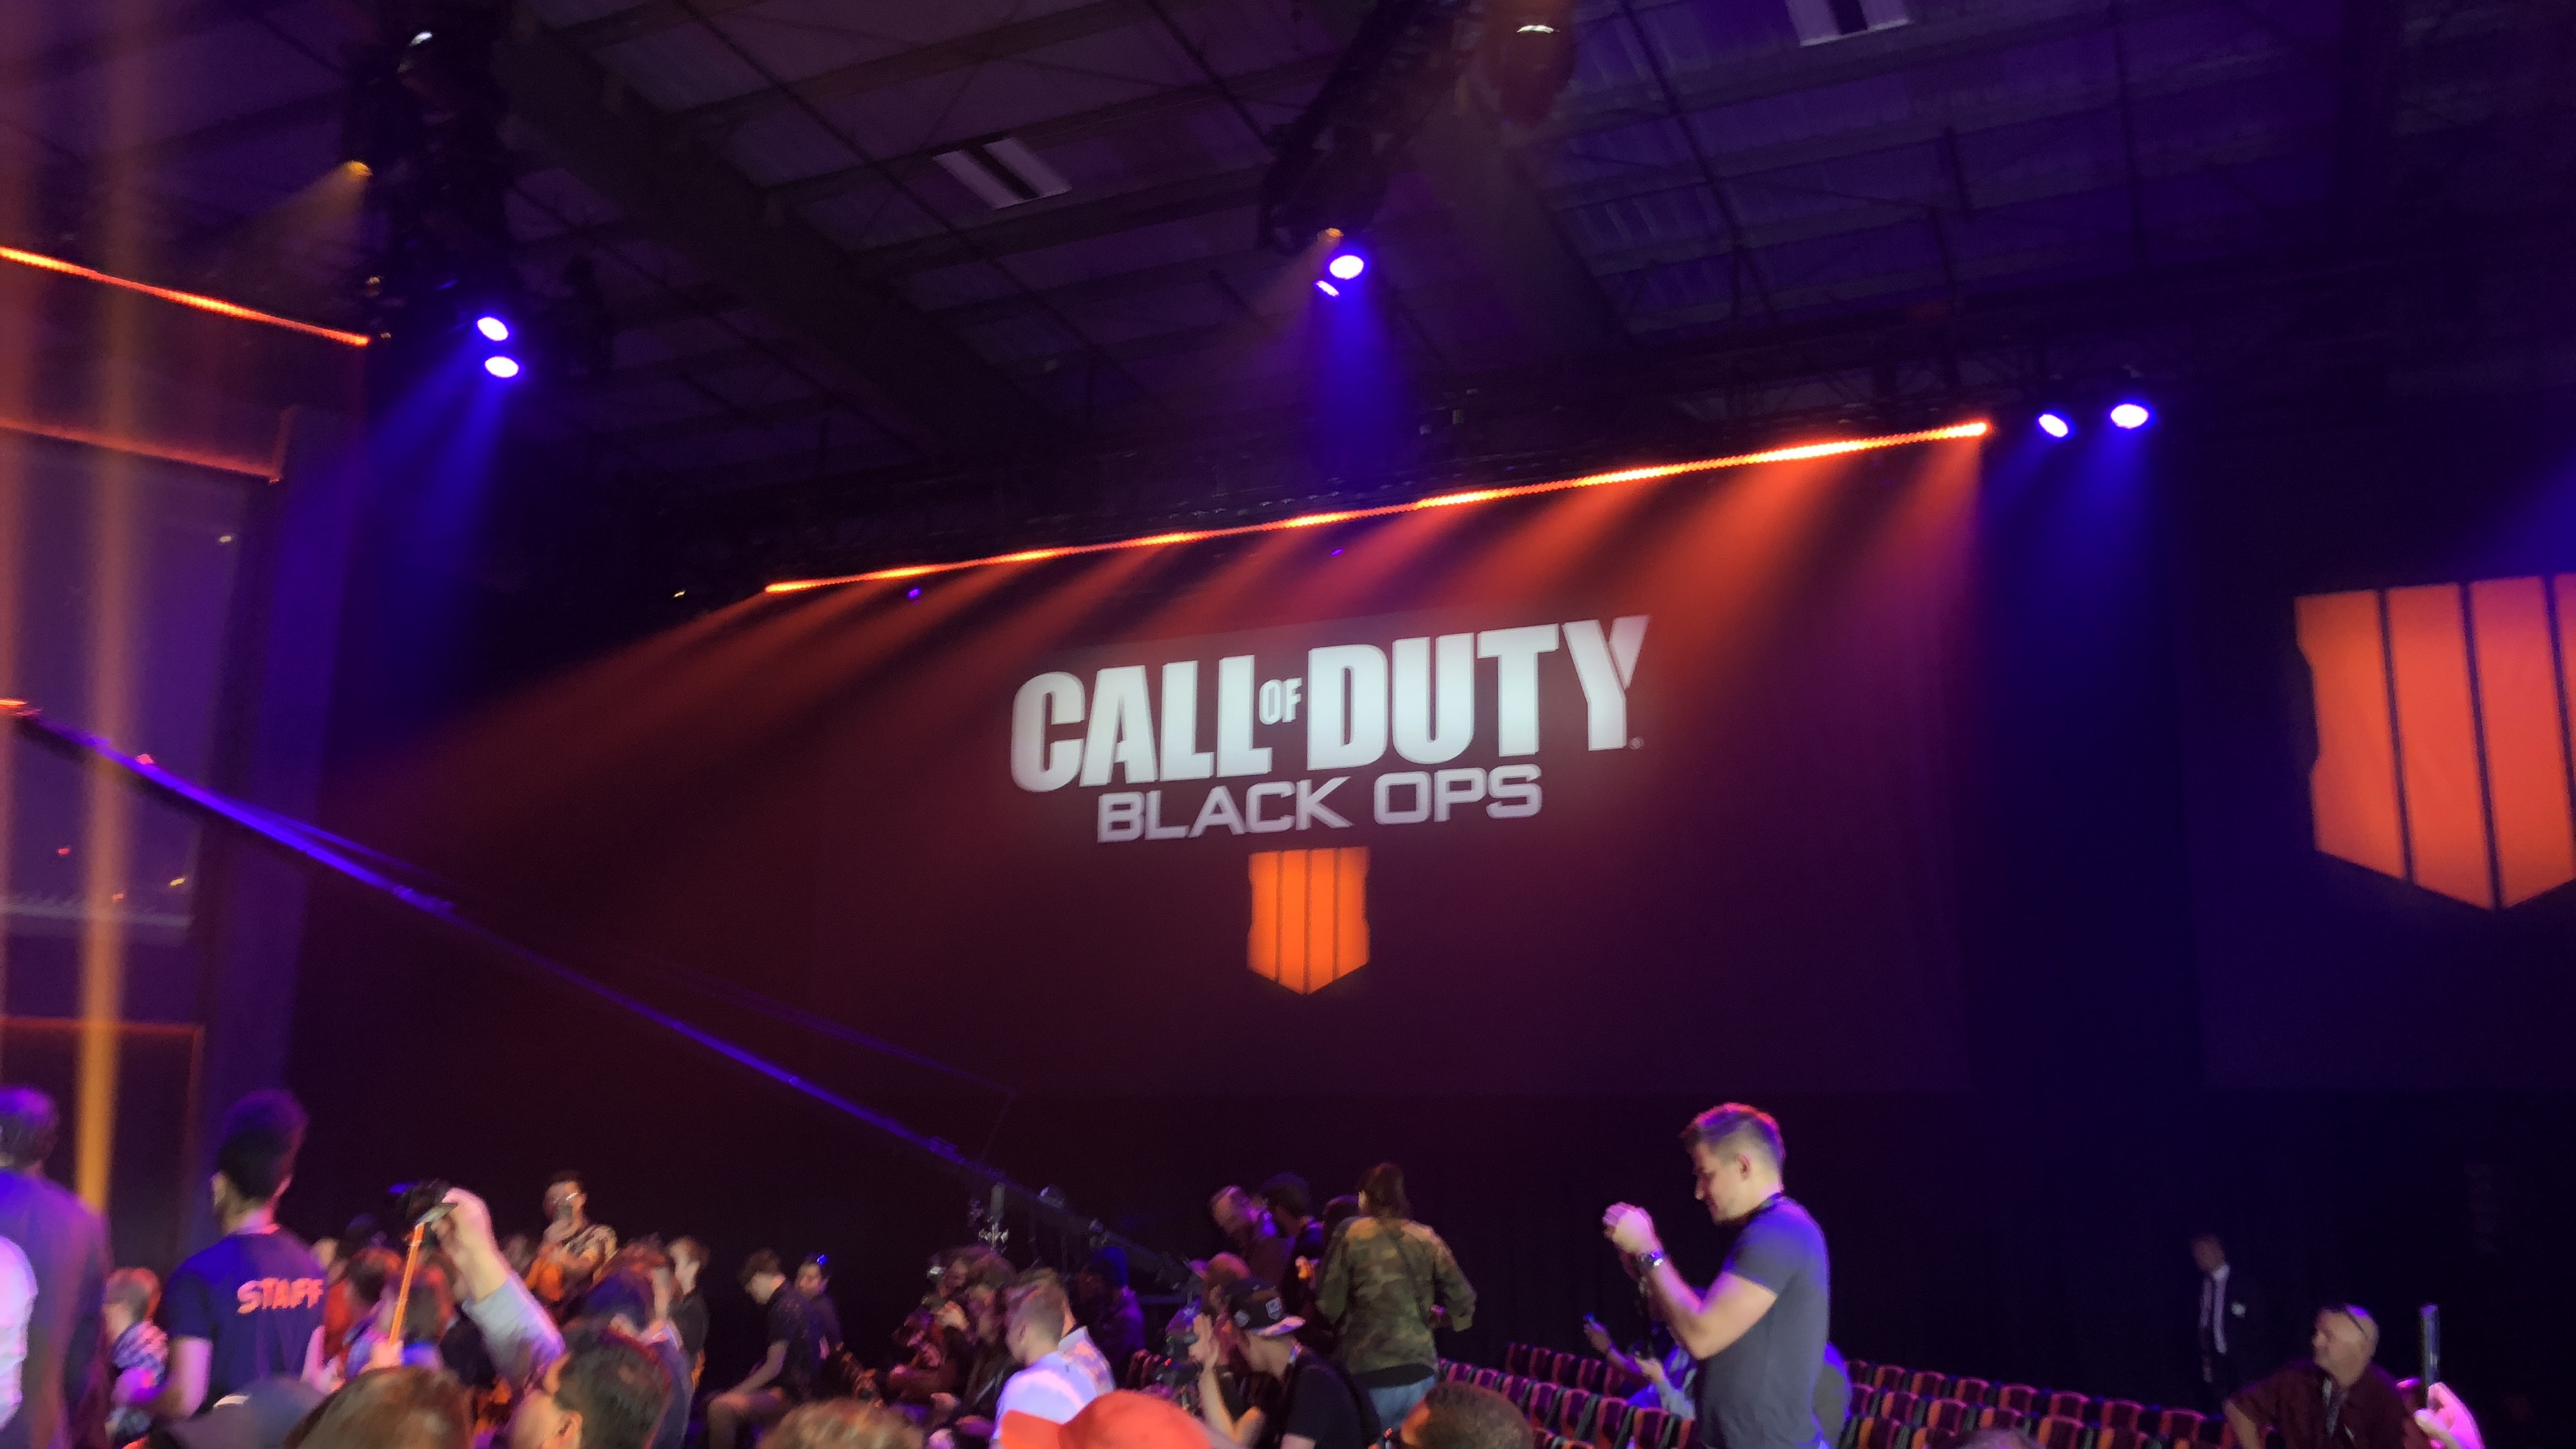 Watch All The Call Of Duty: Black Ops 4 Trailers Here